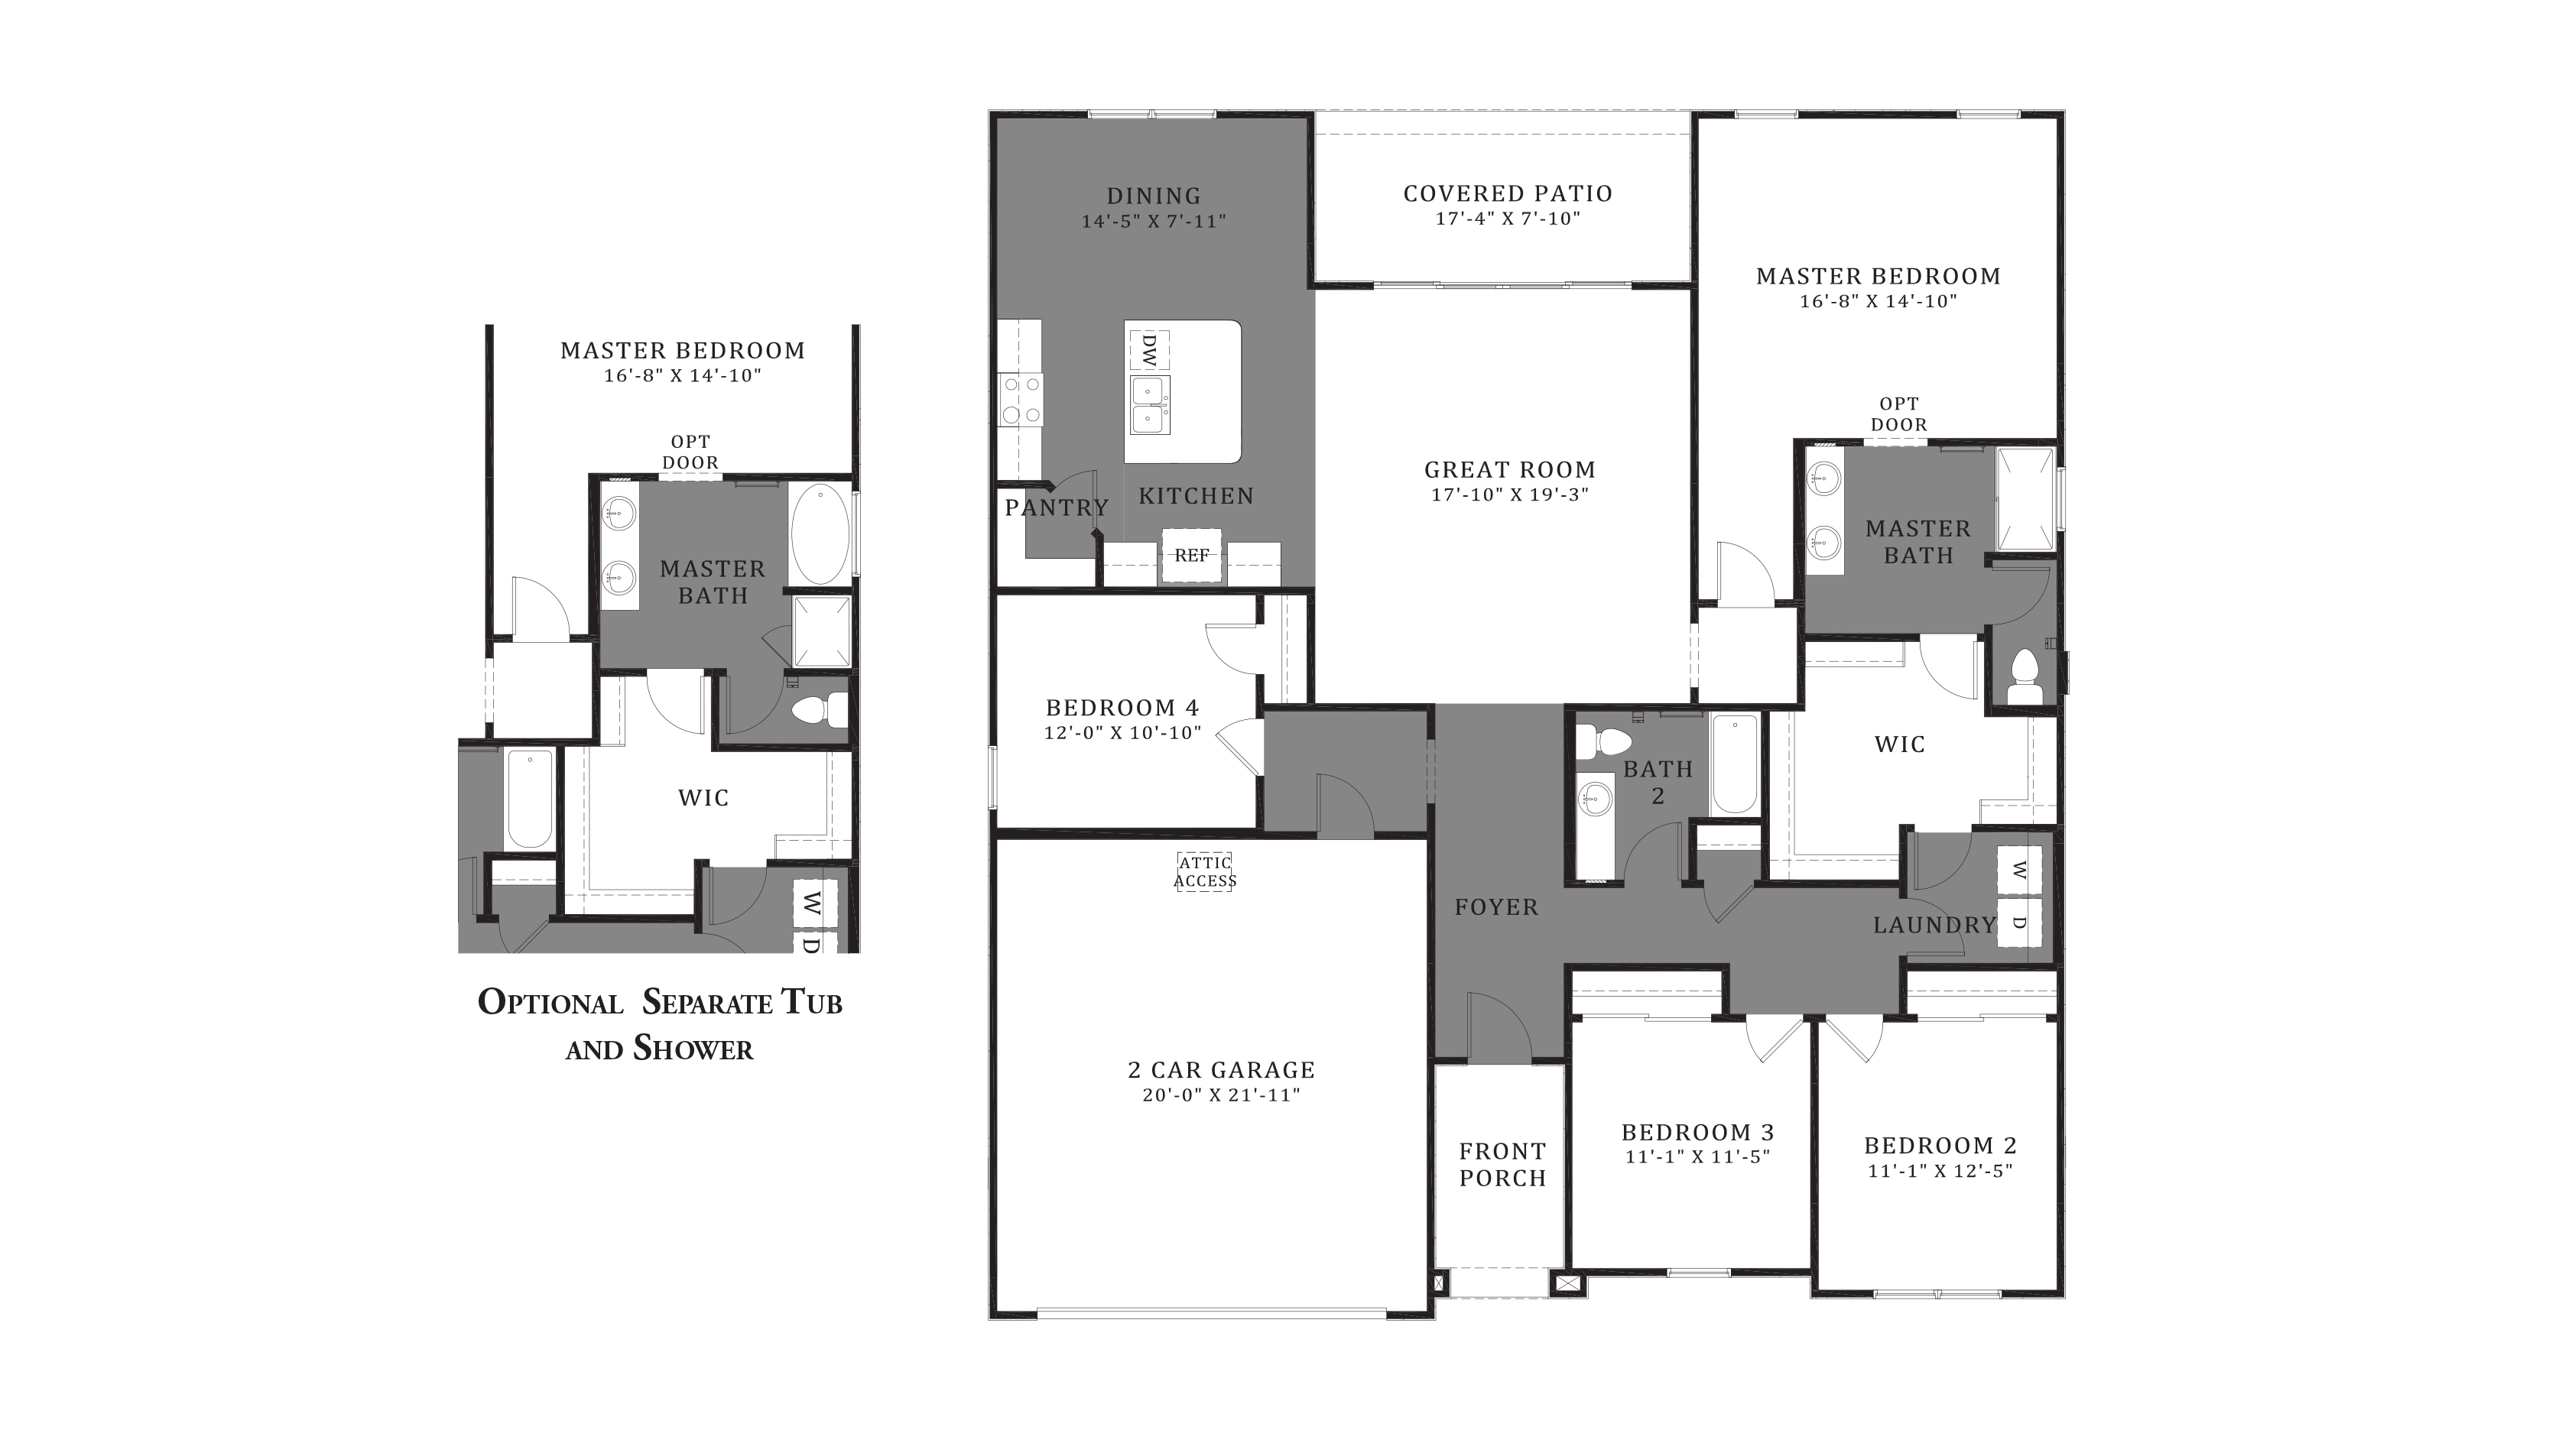 D.R. Horton Santa Cruz Meadows Opal - Plan 5012 Floor Plan